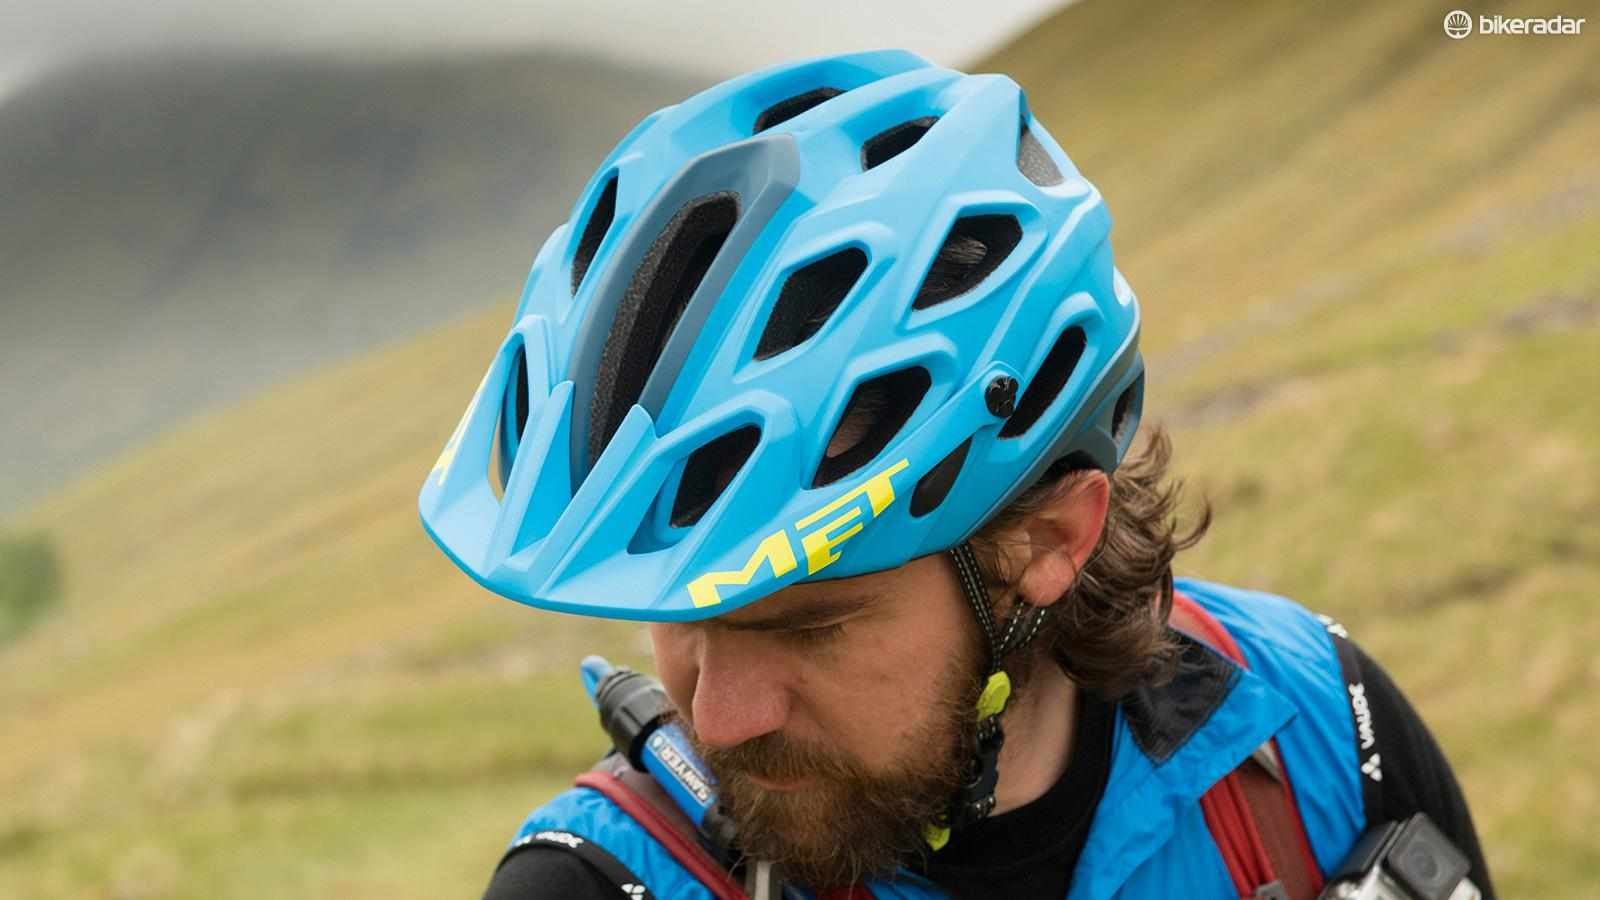 Were it not for its annoyingly unreliable fasteners, MET's Lupo helmet would have been a high scorer